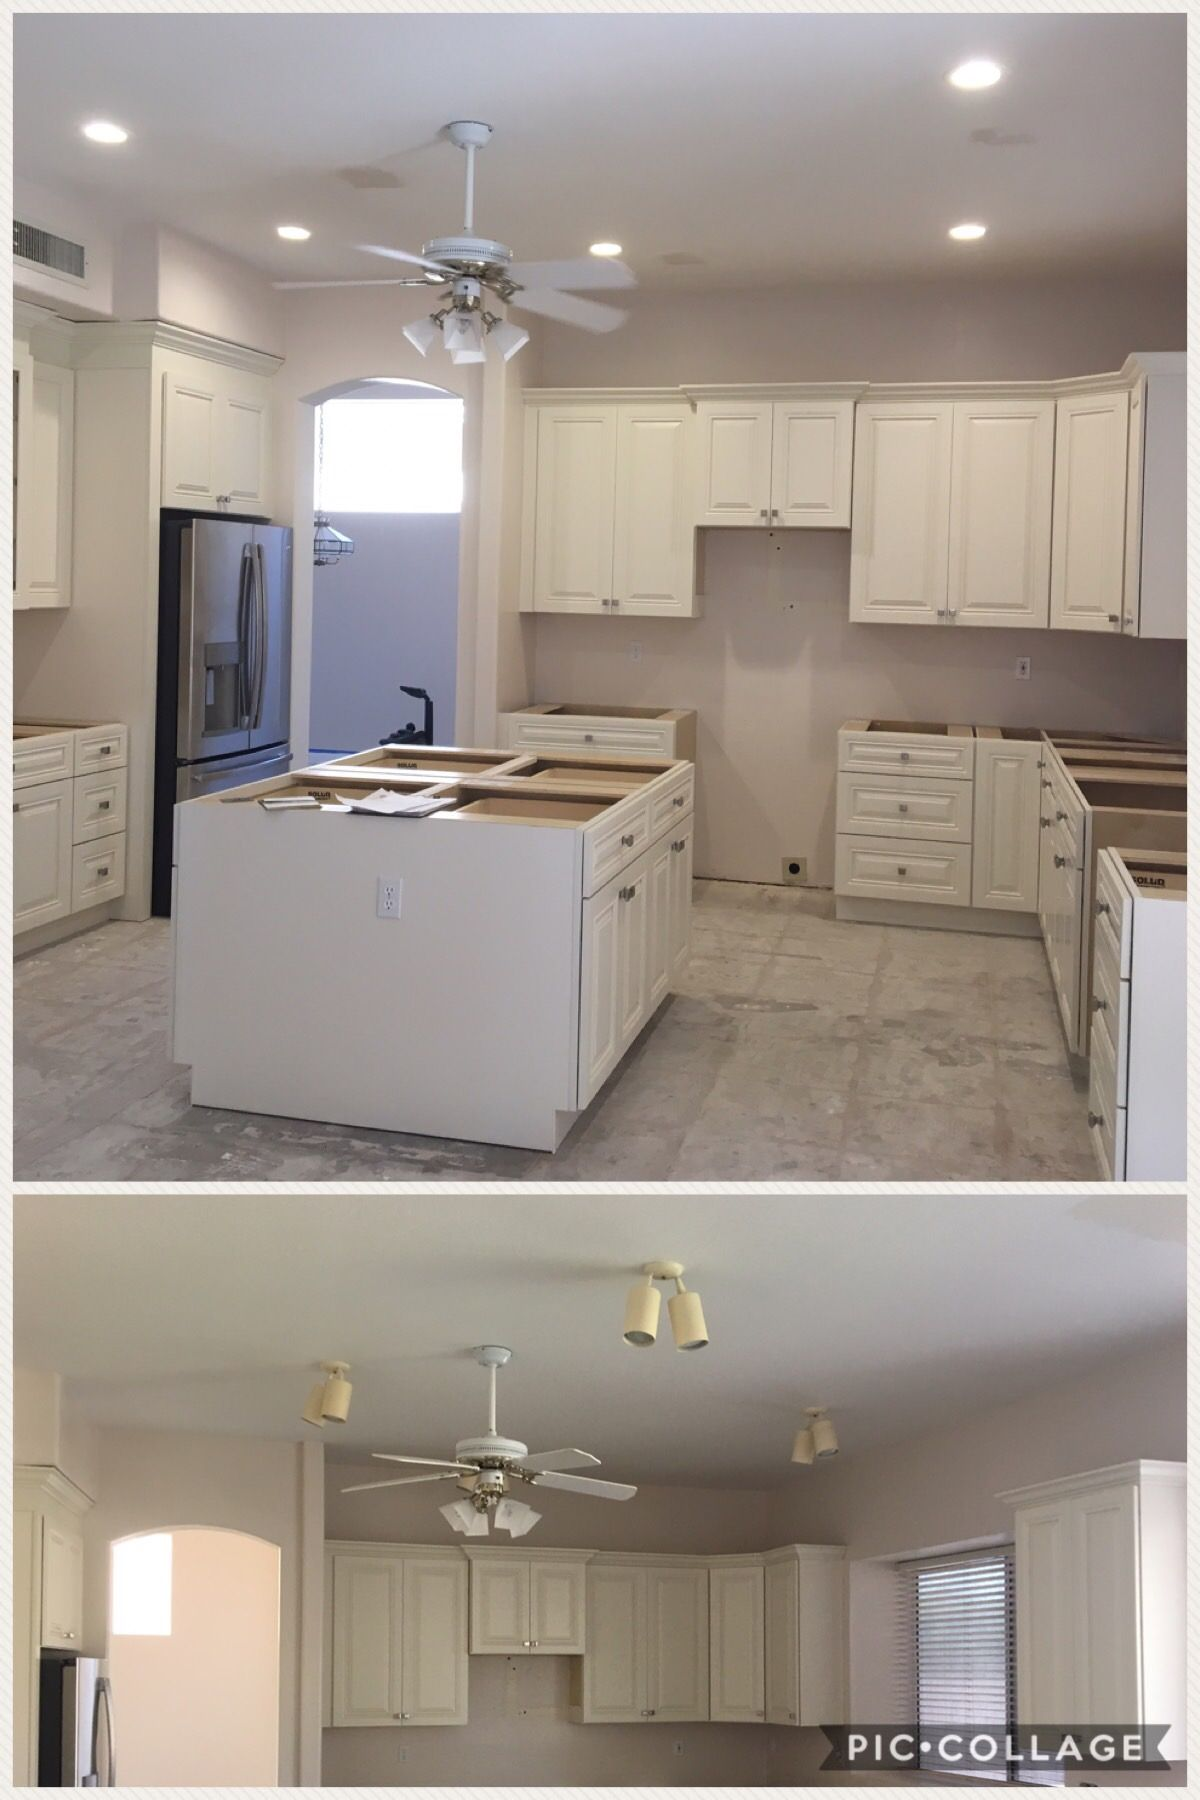 Removed Terribly Place Can Lights Redesigned Layout Installed 5 Led 6 Inch Recessed In Kitchen And Wired Island Receptacles